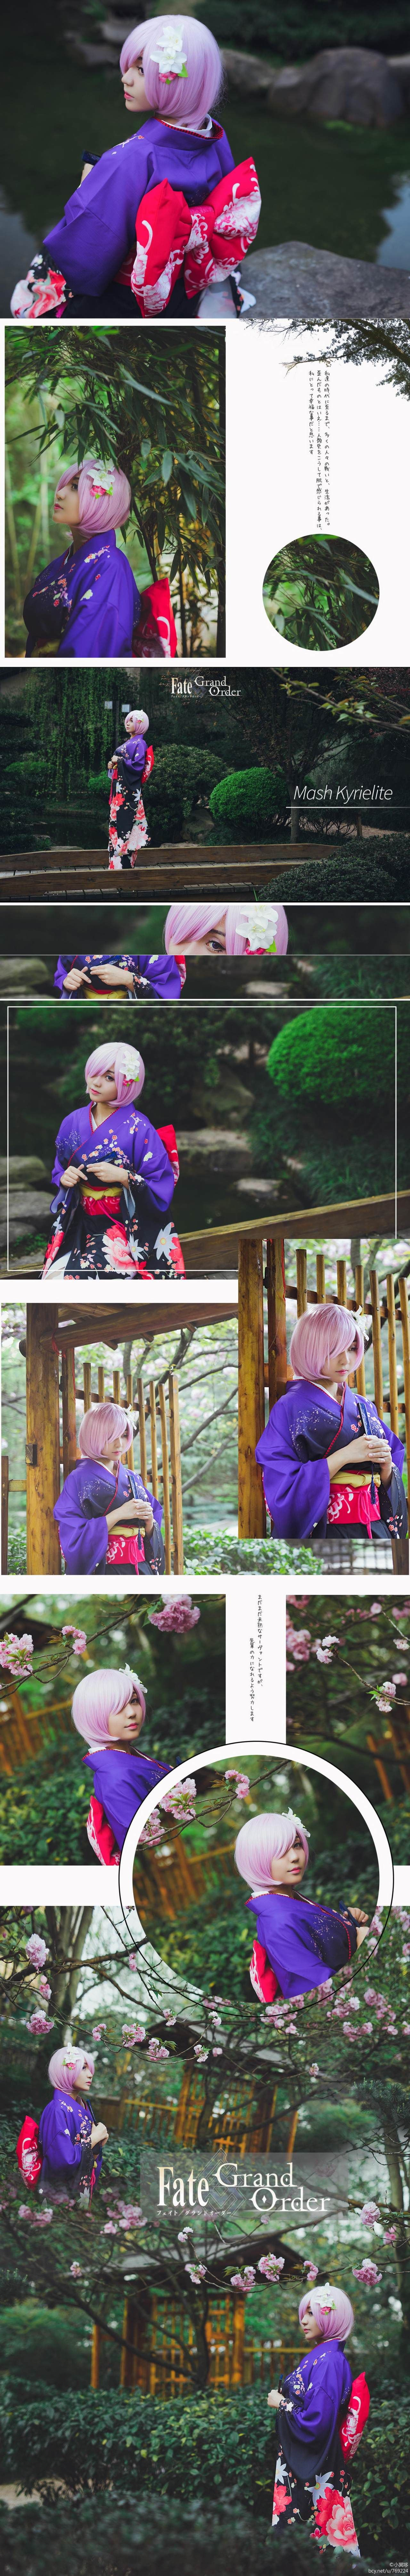 fate./grand order玛修和服cosplay